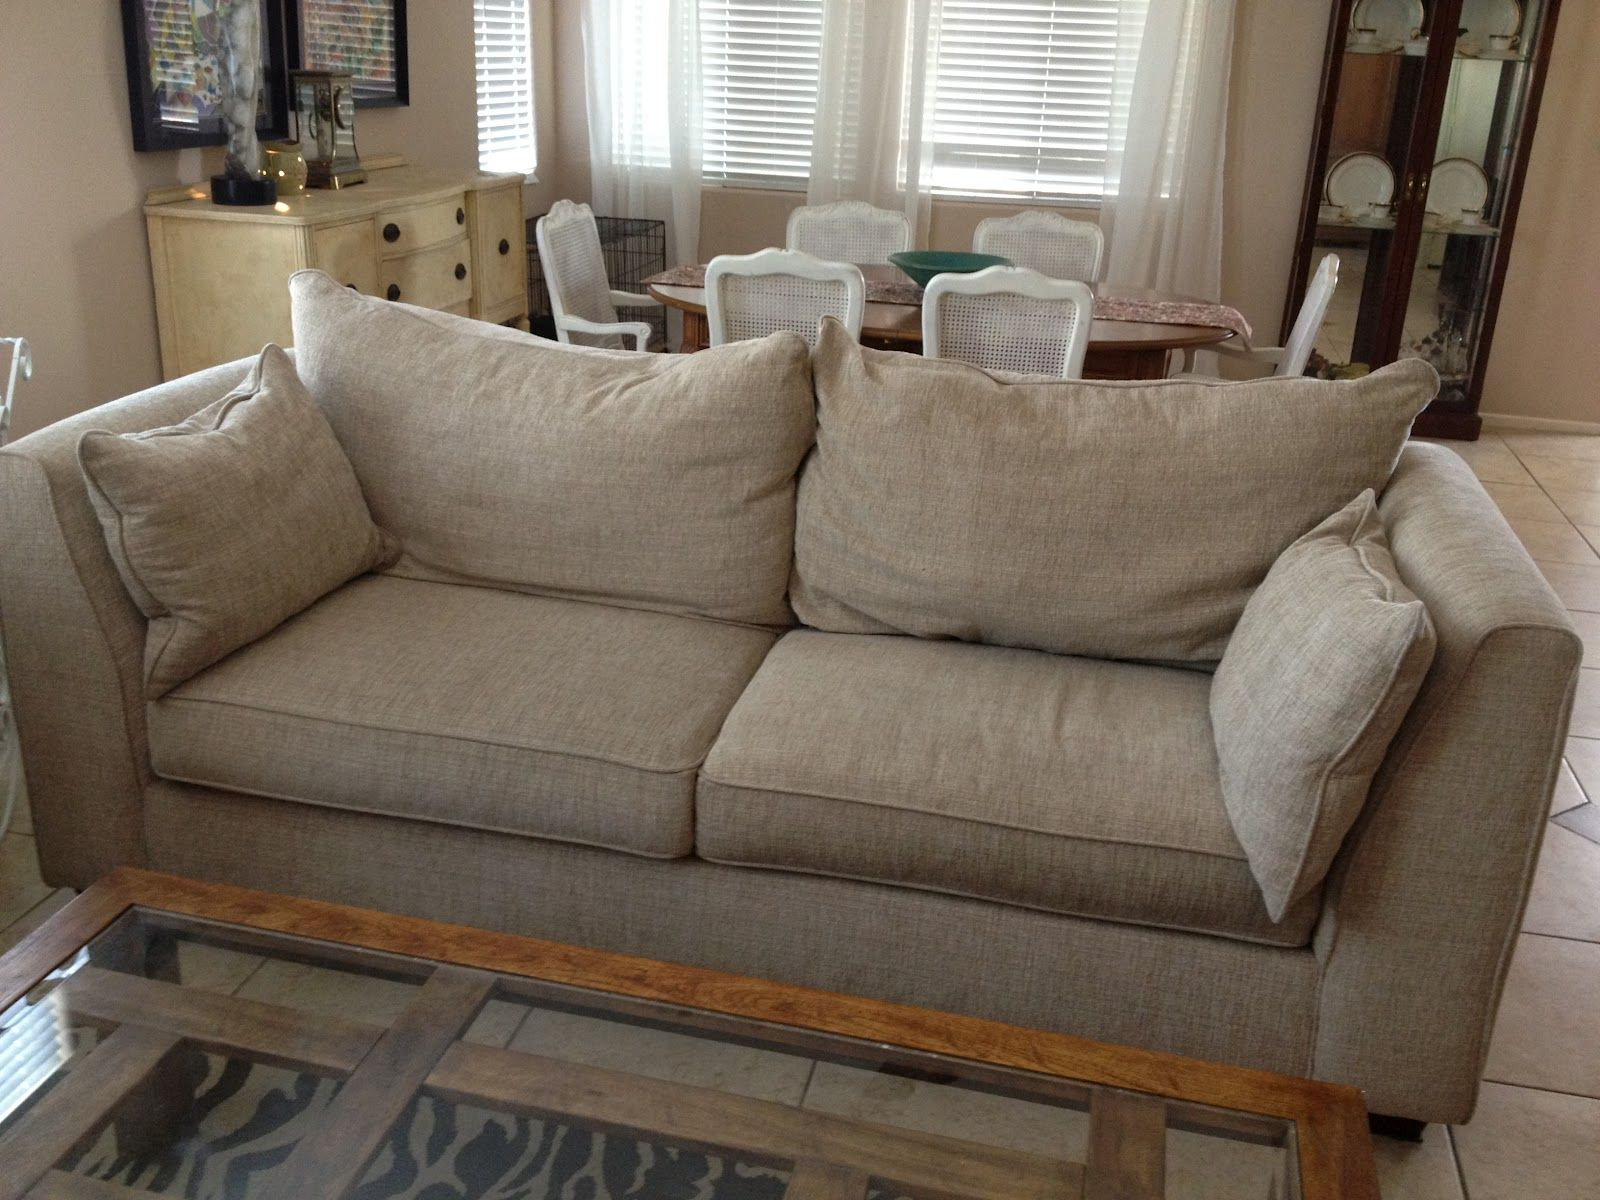 Best Pin By Petey On Table And Couch Reference Furniture 400 x 300